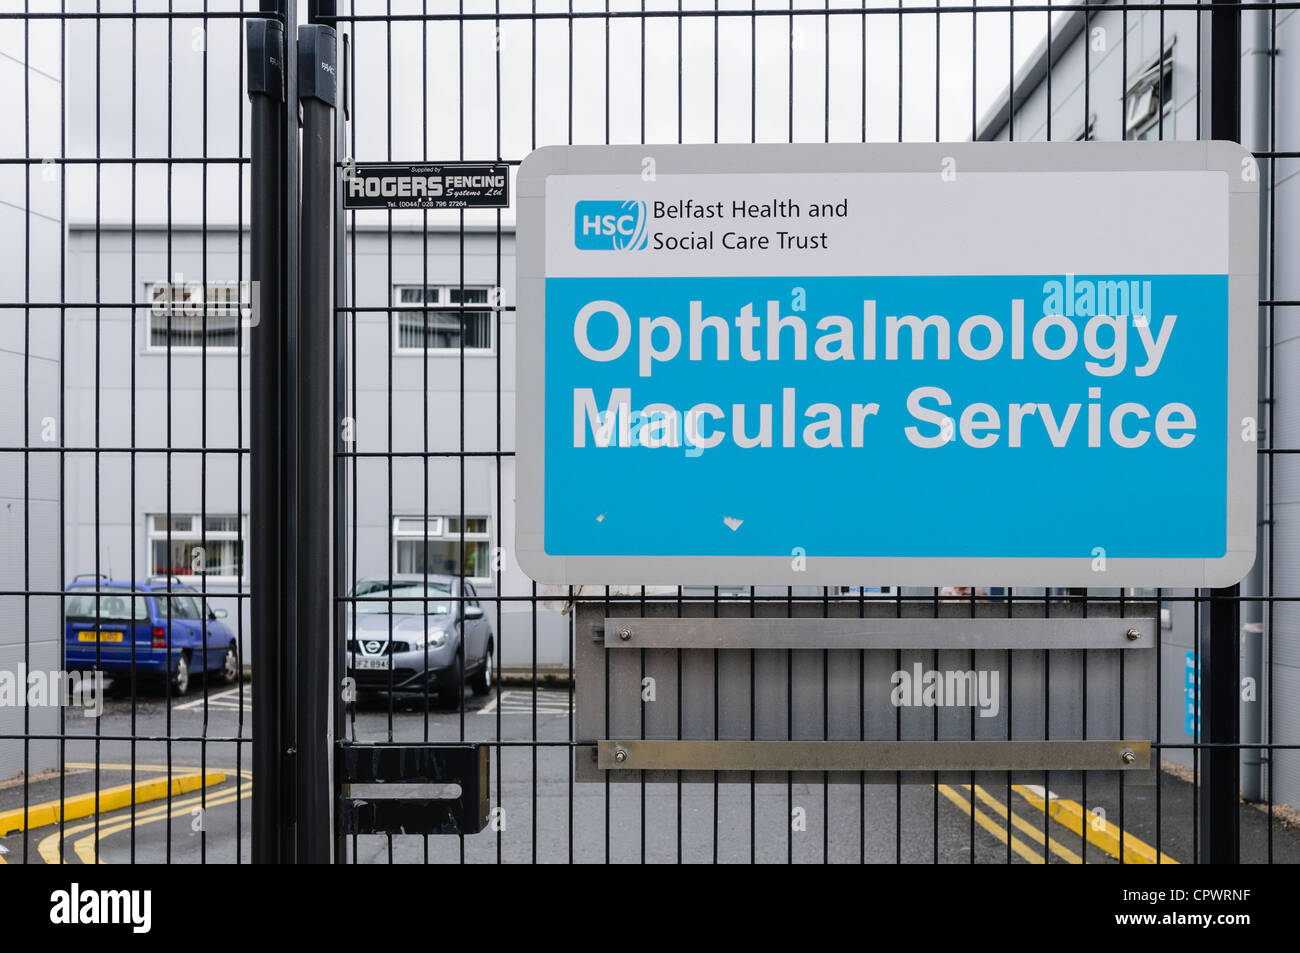 Sign for 'Opthalmology Macular Service' outside a gate into a hospital. - Stock Image